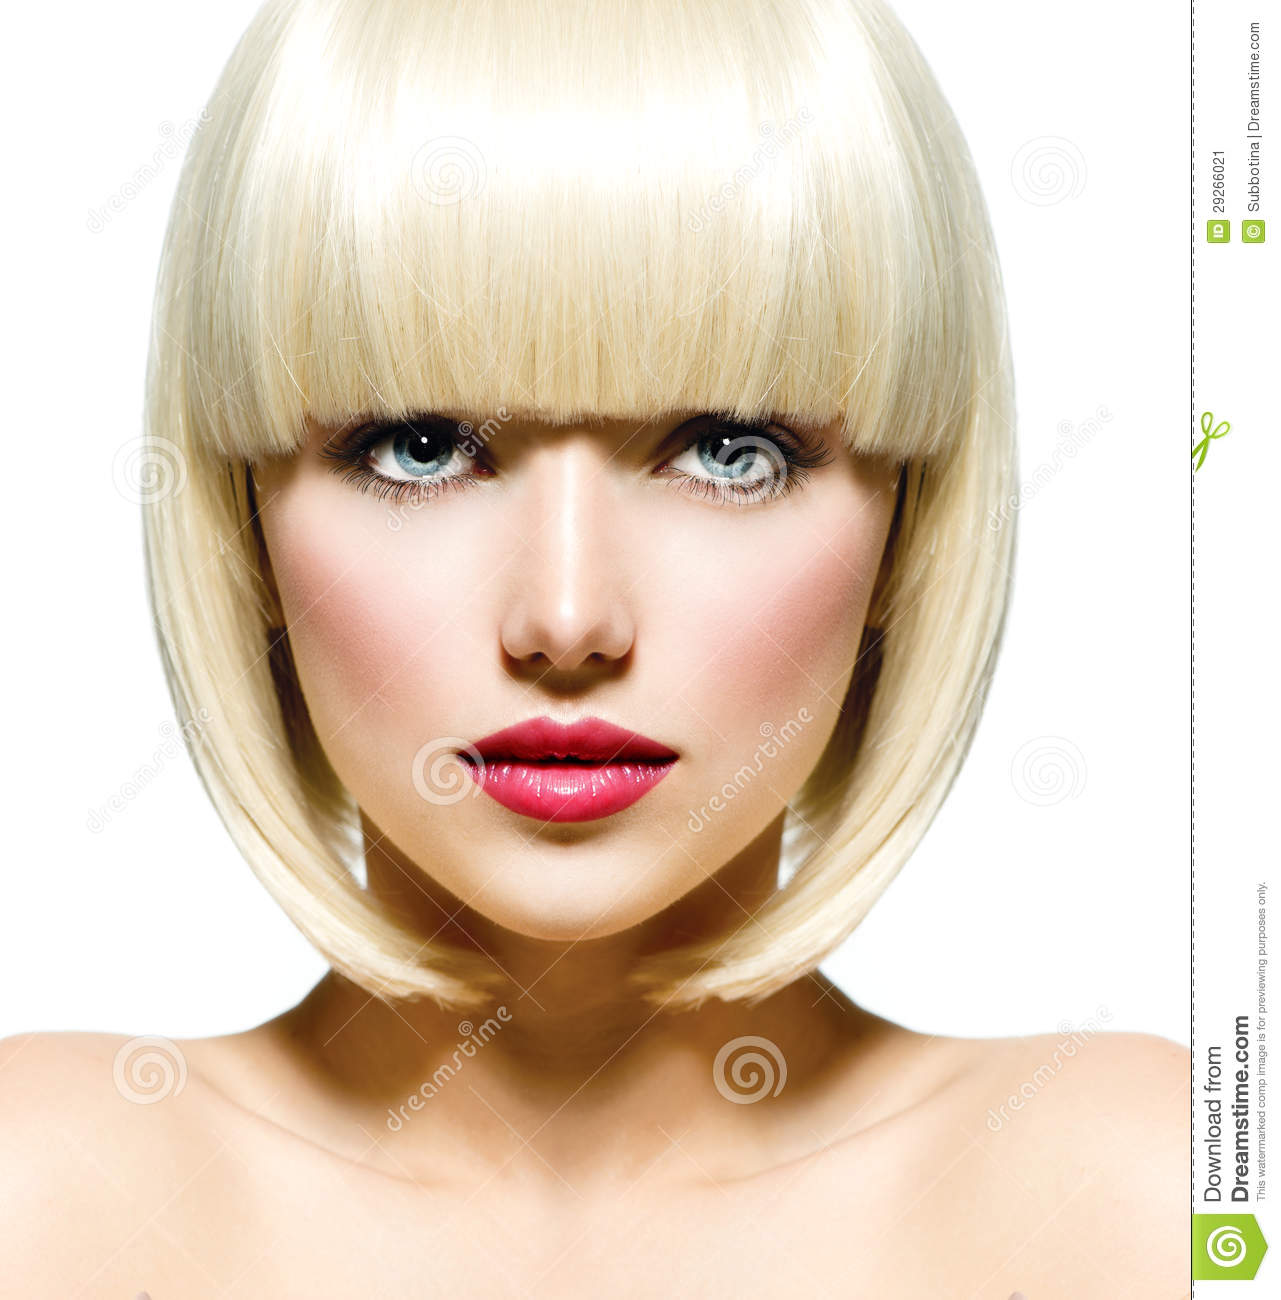 Beauty Is As Beauty Does Pictures: Fashion Beauty Portrait Stock Image. Image Of Lipstick